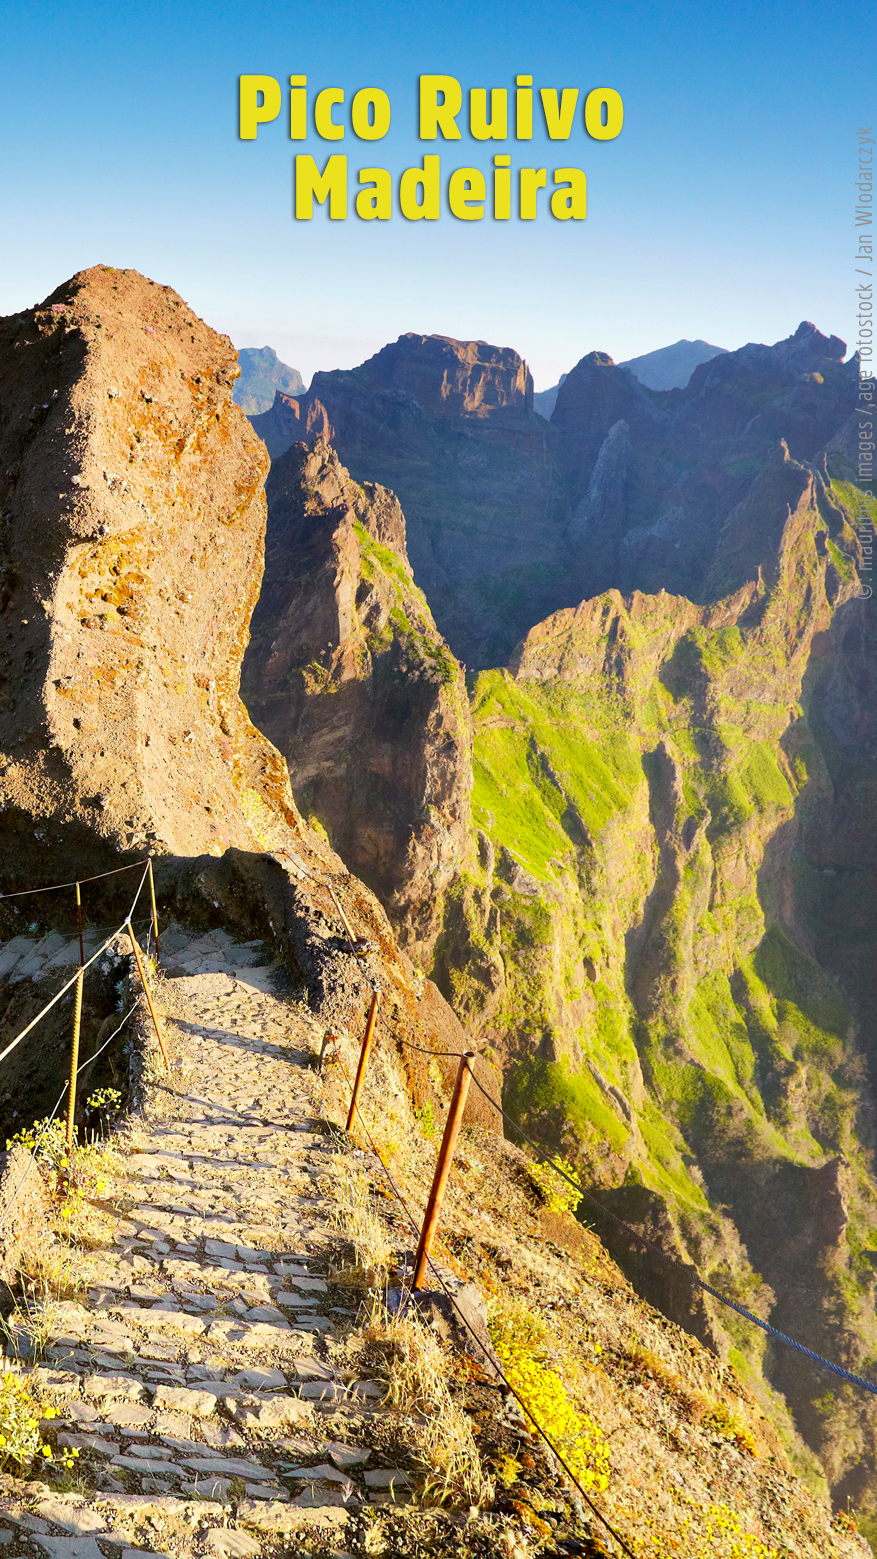 Traumort des Tages: Pico Ruivo, Madeira, Portugal #traveltoportugal